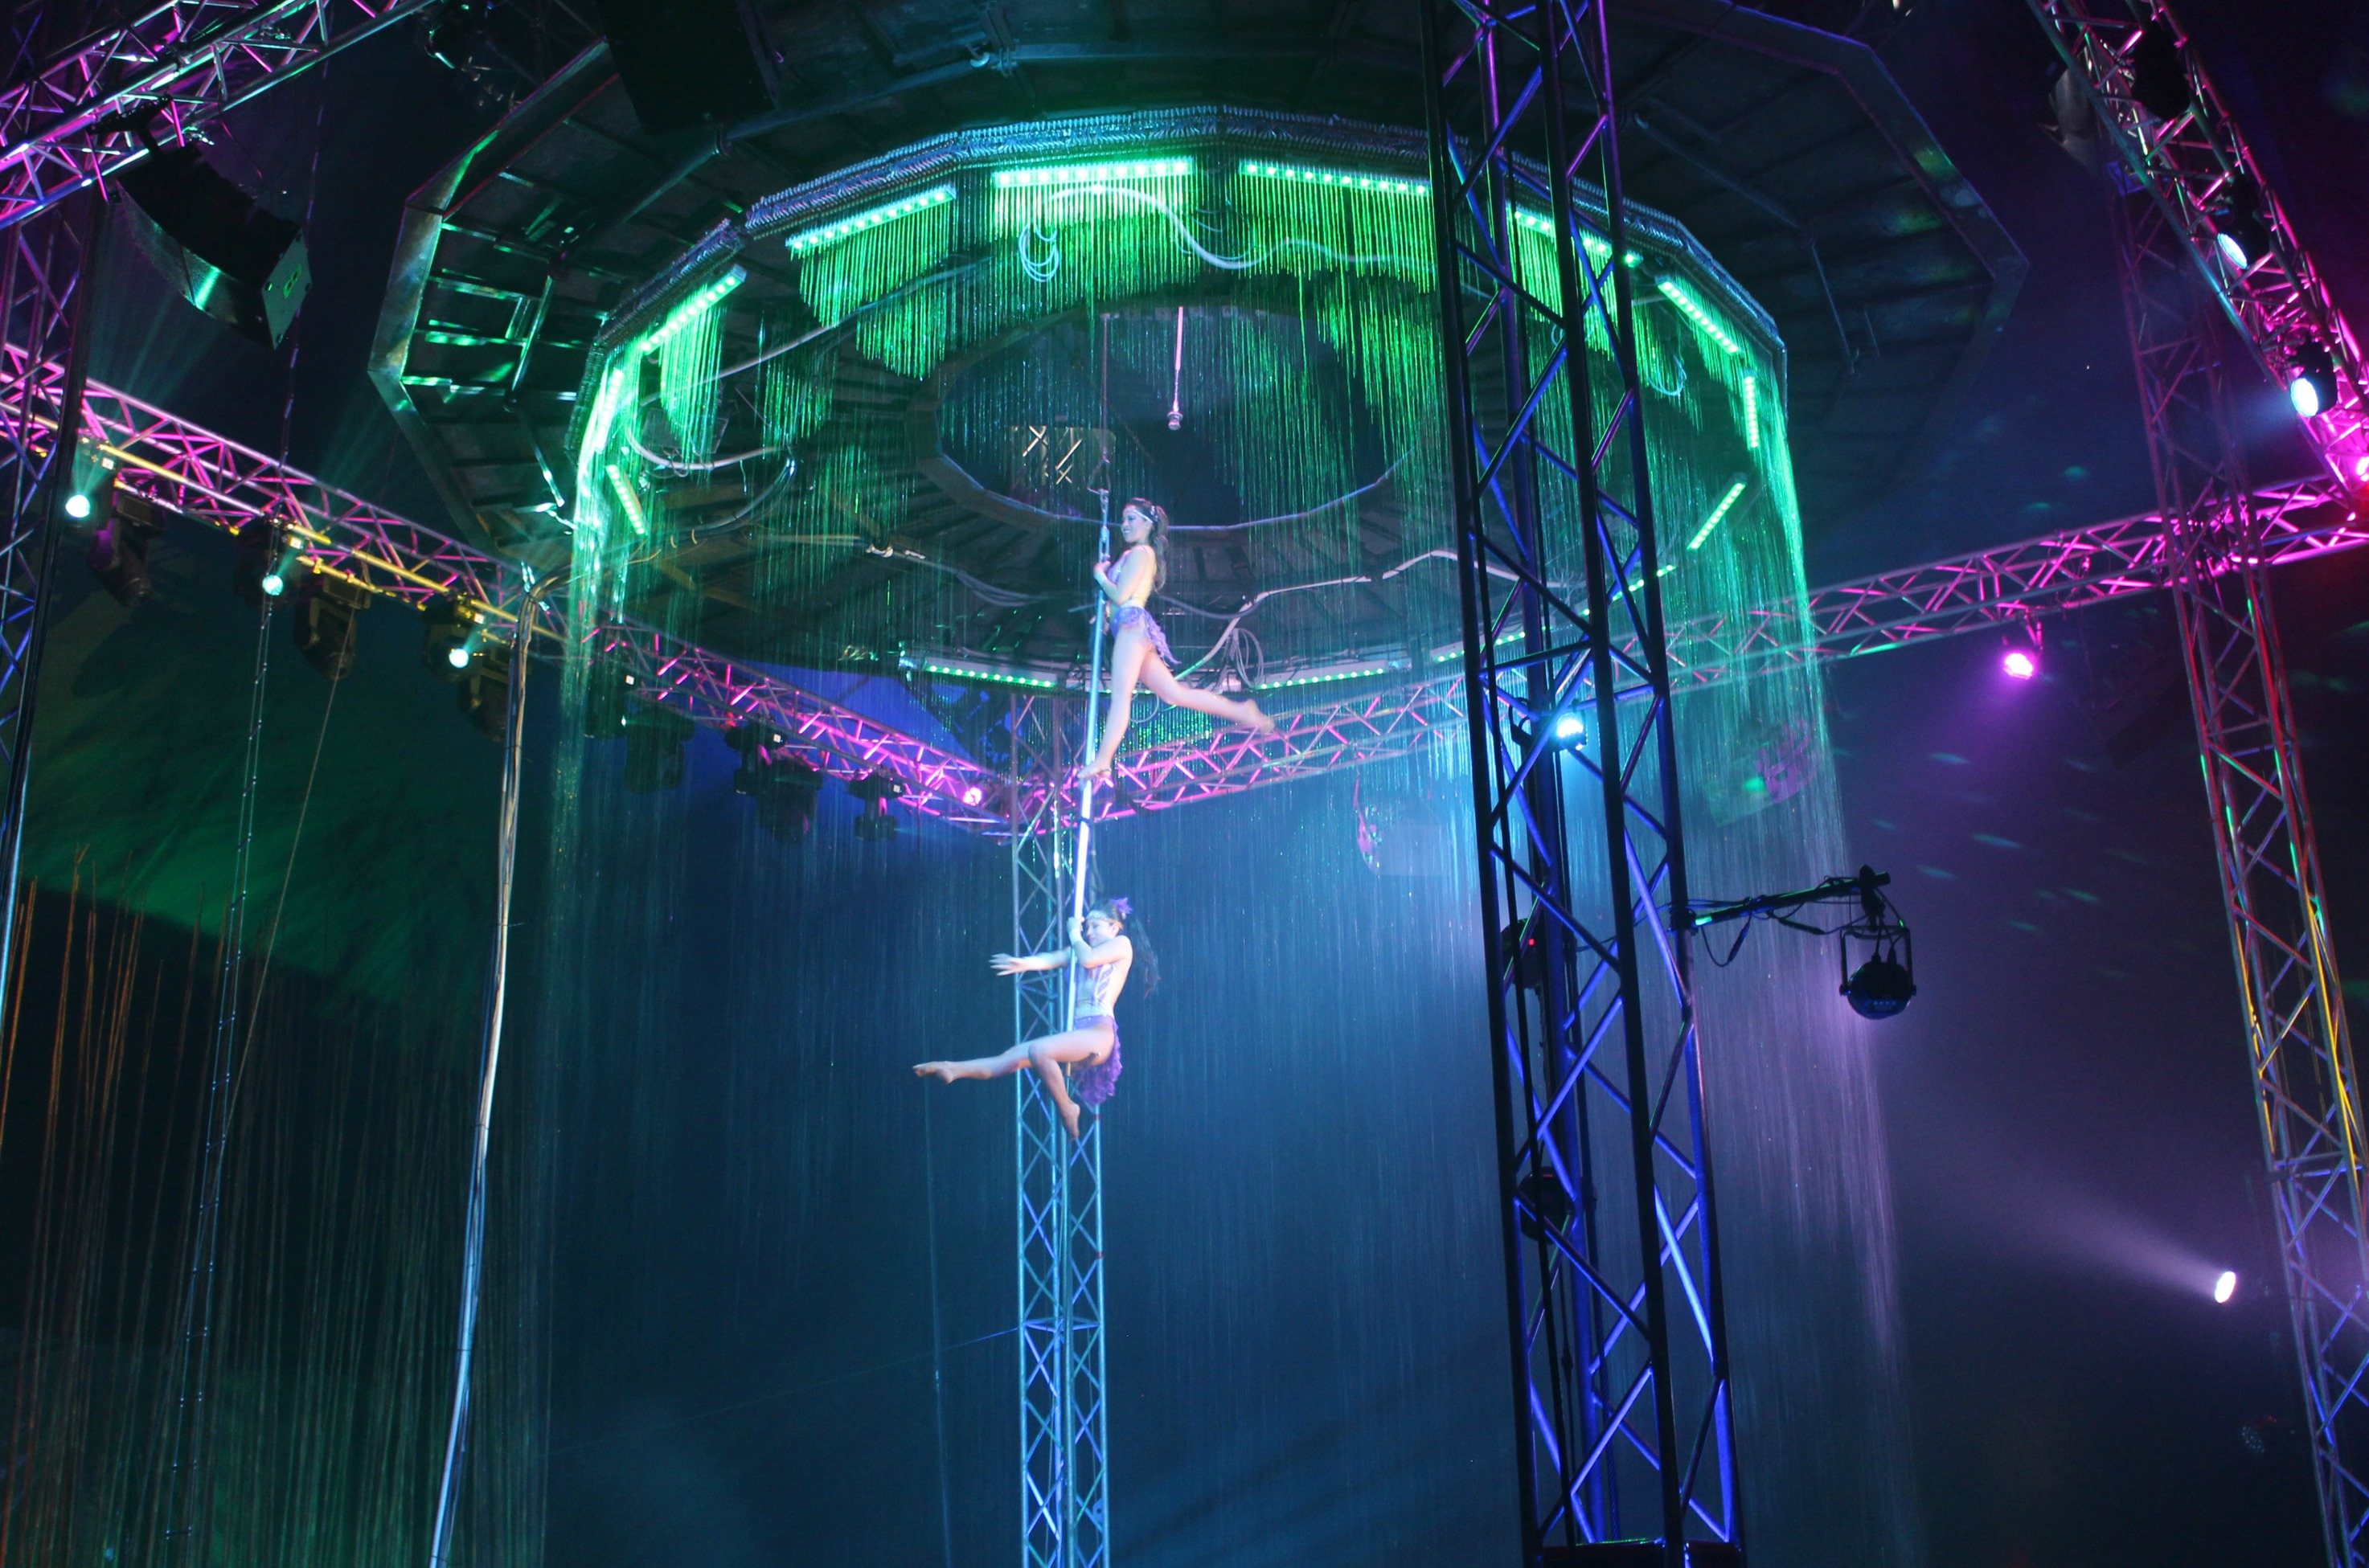 Cirque-italia-review-palmetto-florida-show-water-circus